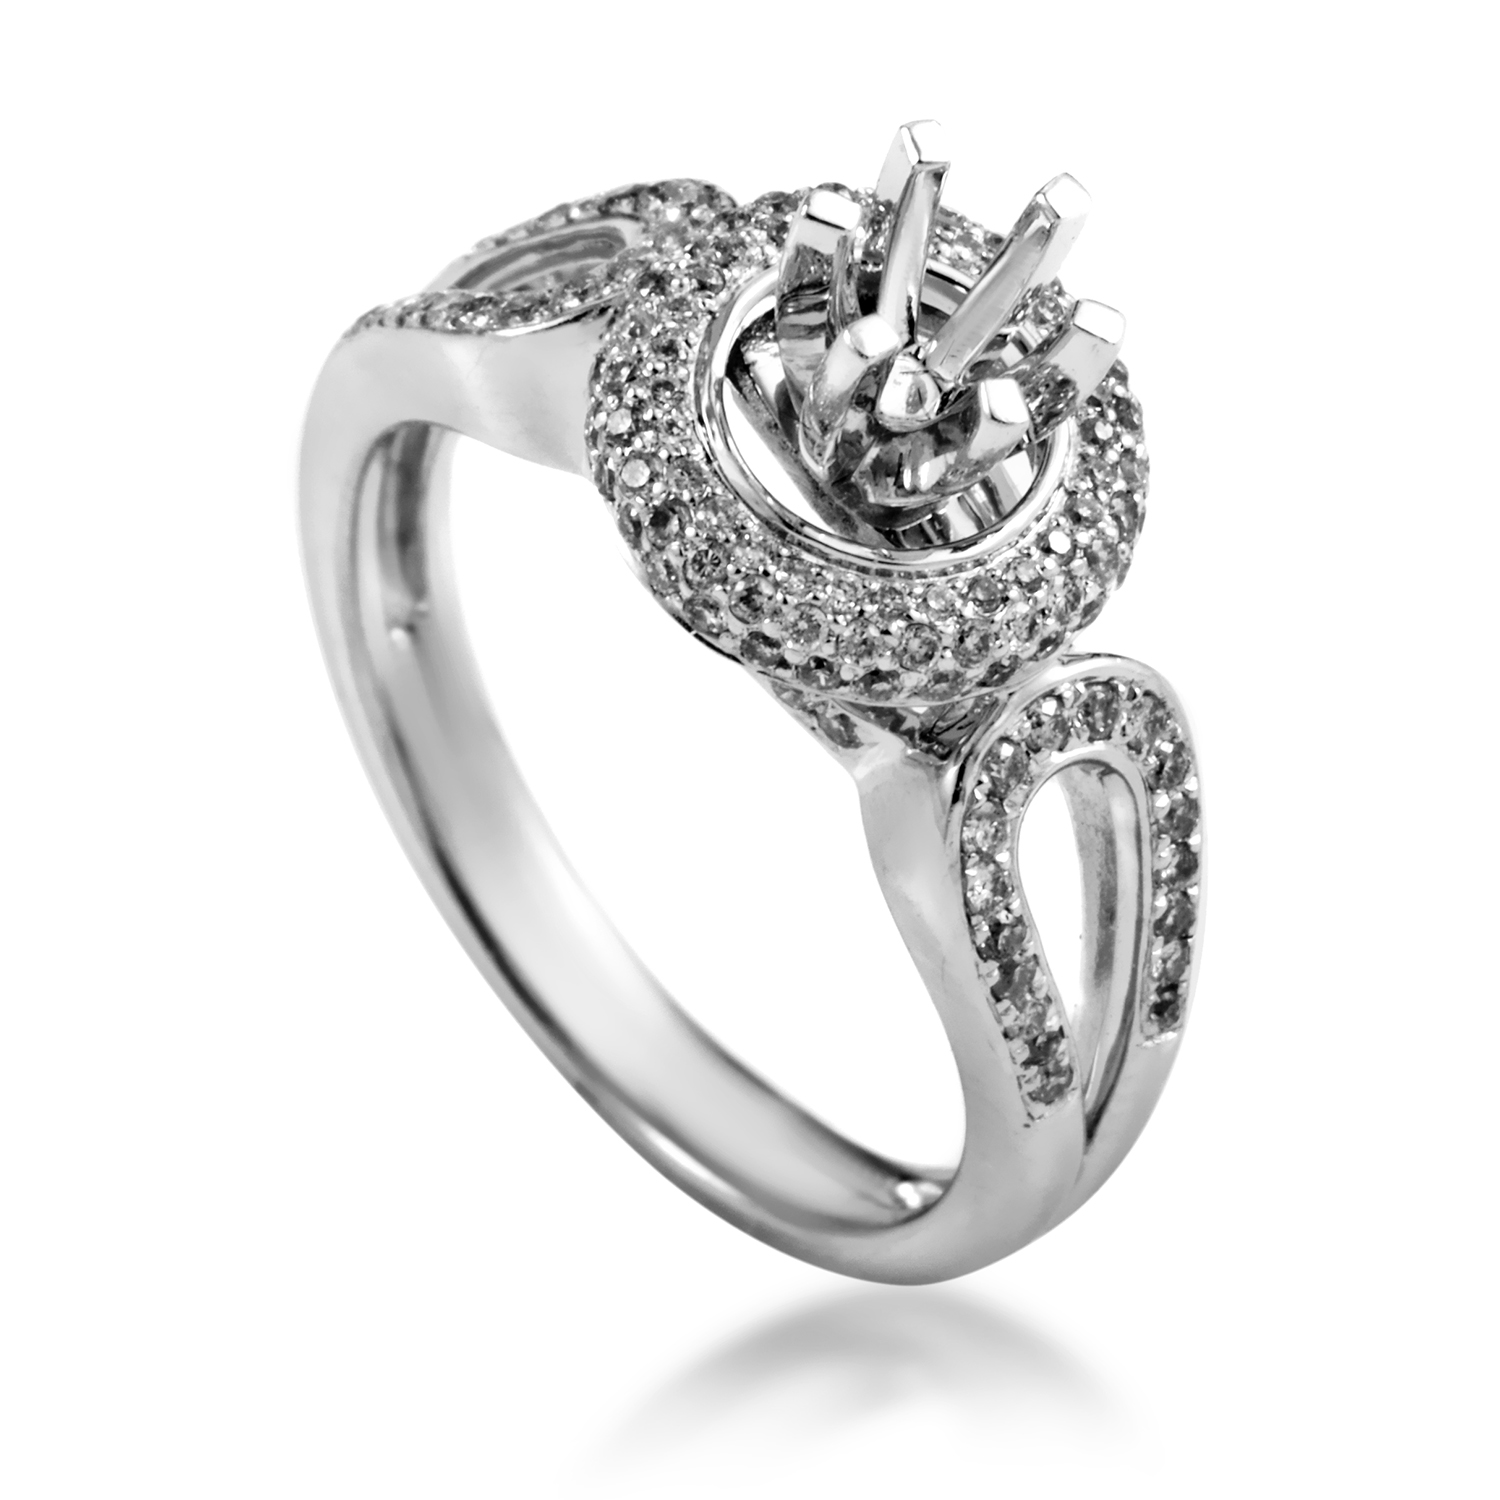 Women's 14K White Gold Diamond Engagement Ring Mounting SM4-051228W